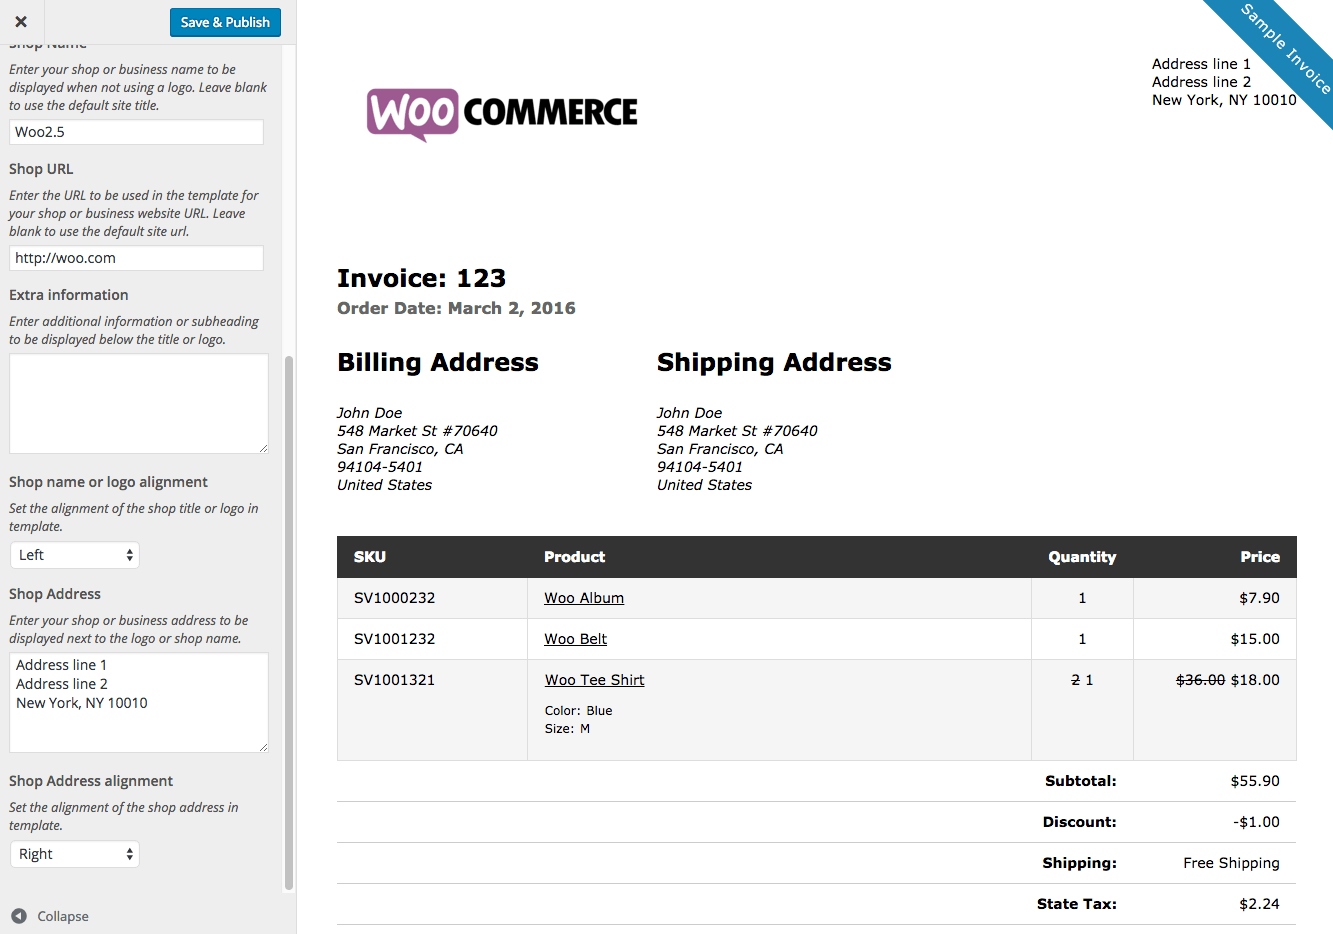 Totallocalus  Surprising Woocommerce Print Invoices Amp Packing Lists  Woocommerce Docs With Engaging Woocommerce Print Invoices  Packing Lists Customizer With Captivating Receipt Book Format Also Cash Receipt Process In Addition How To Design A Receipt And Pay Receipt Form As Well As Receipts For Child Care Additionally Receipts Template Pdf From Docswoocommercecom With Totallocalus  Engaging Woocommerce Print Invoices Amp Packing Lists  Woocommerce Docs With Captivating Woocommerce Print Invoices  Packing Lists Customizer And Surprising Receipt Book Format Also Cash Receipt Process In Addition How To Design A Receipt From Docswoocommercecom